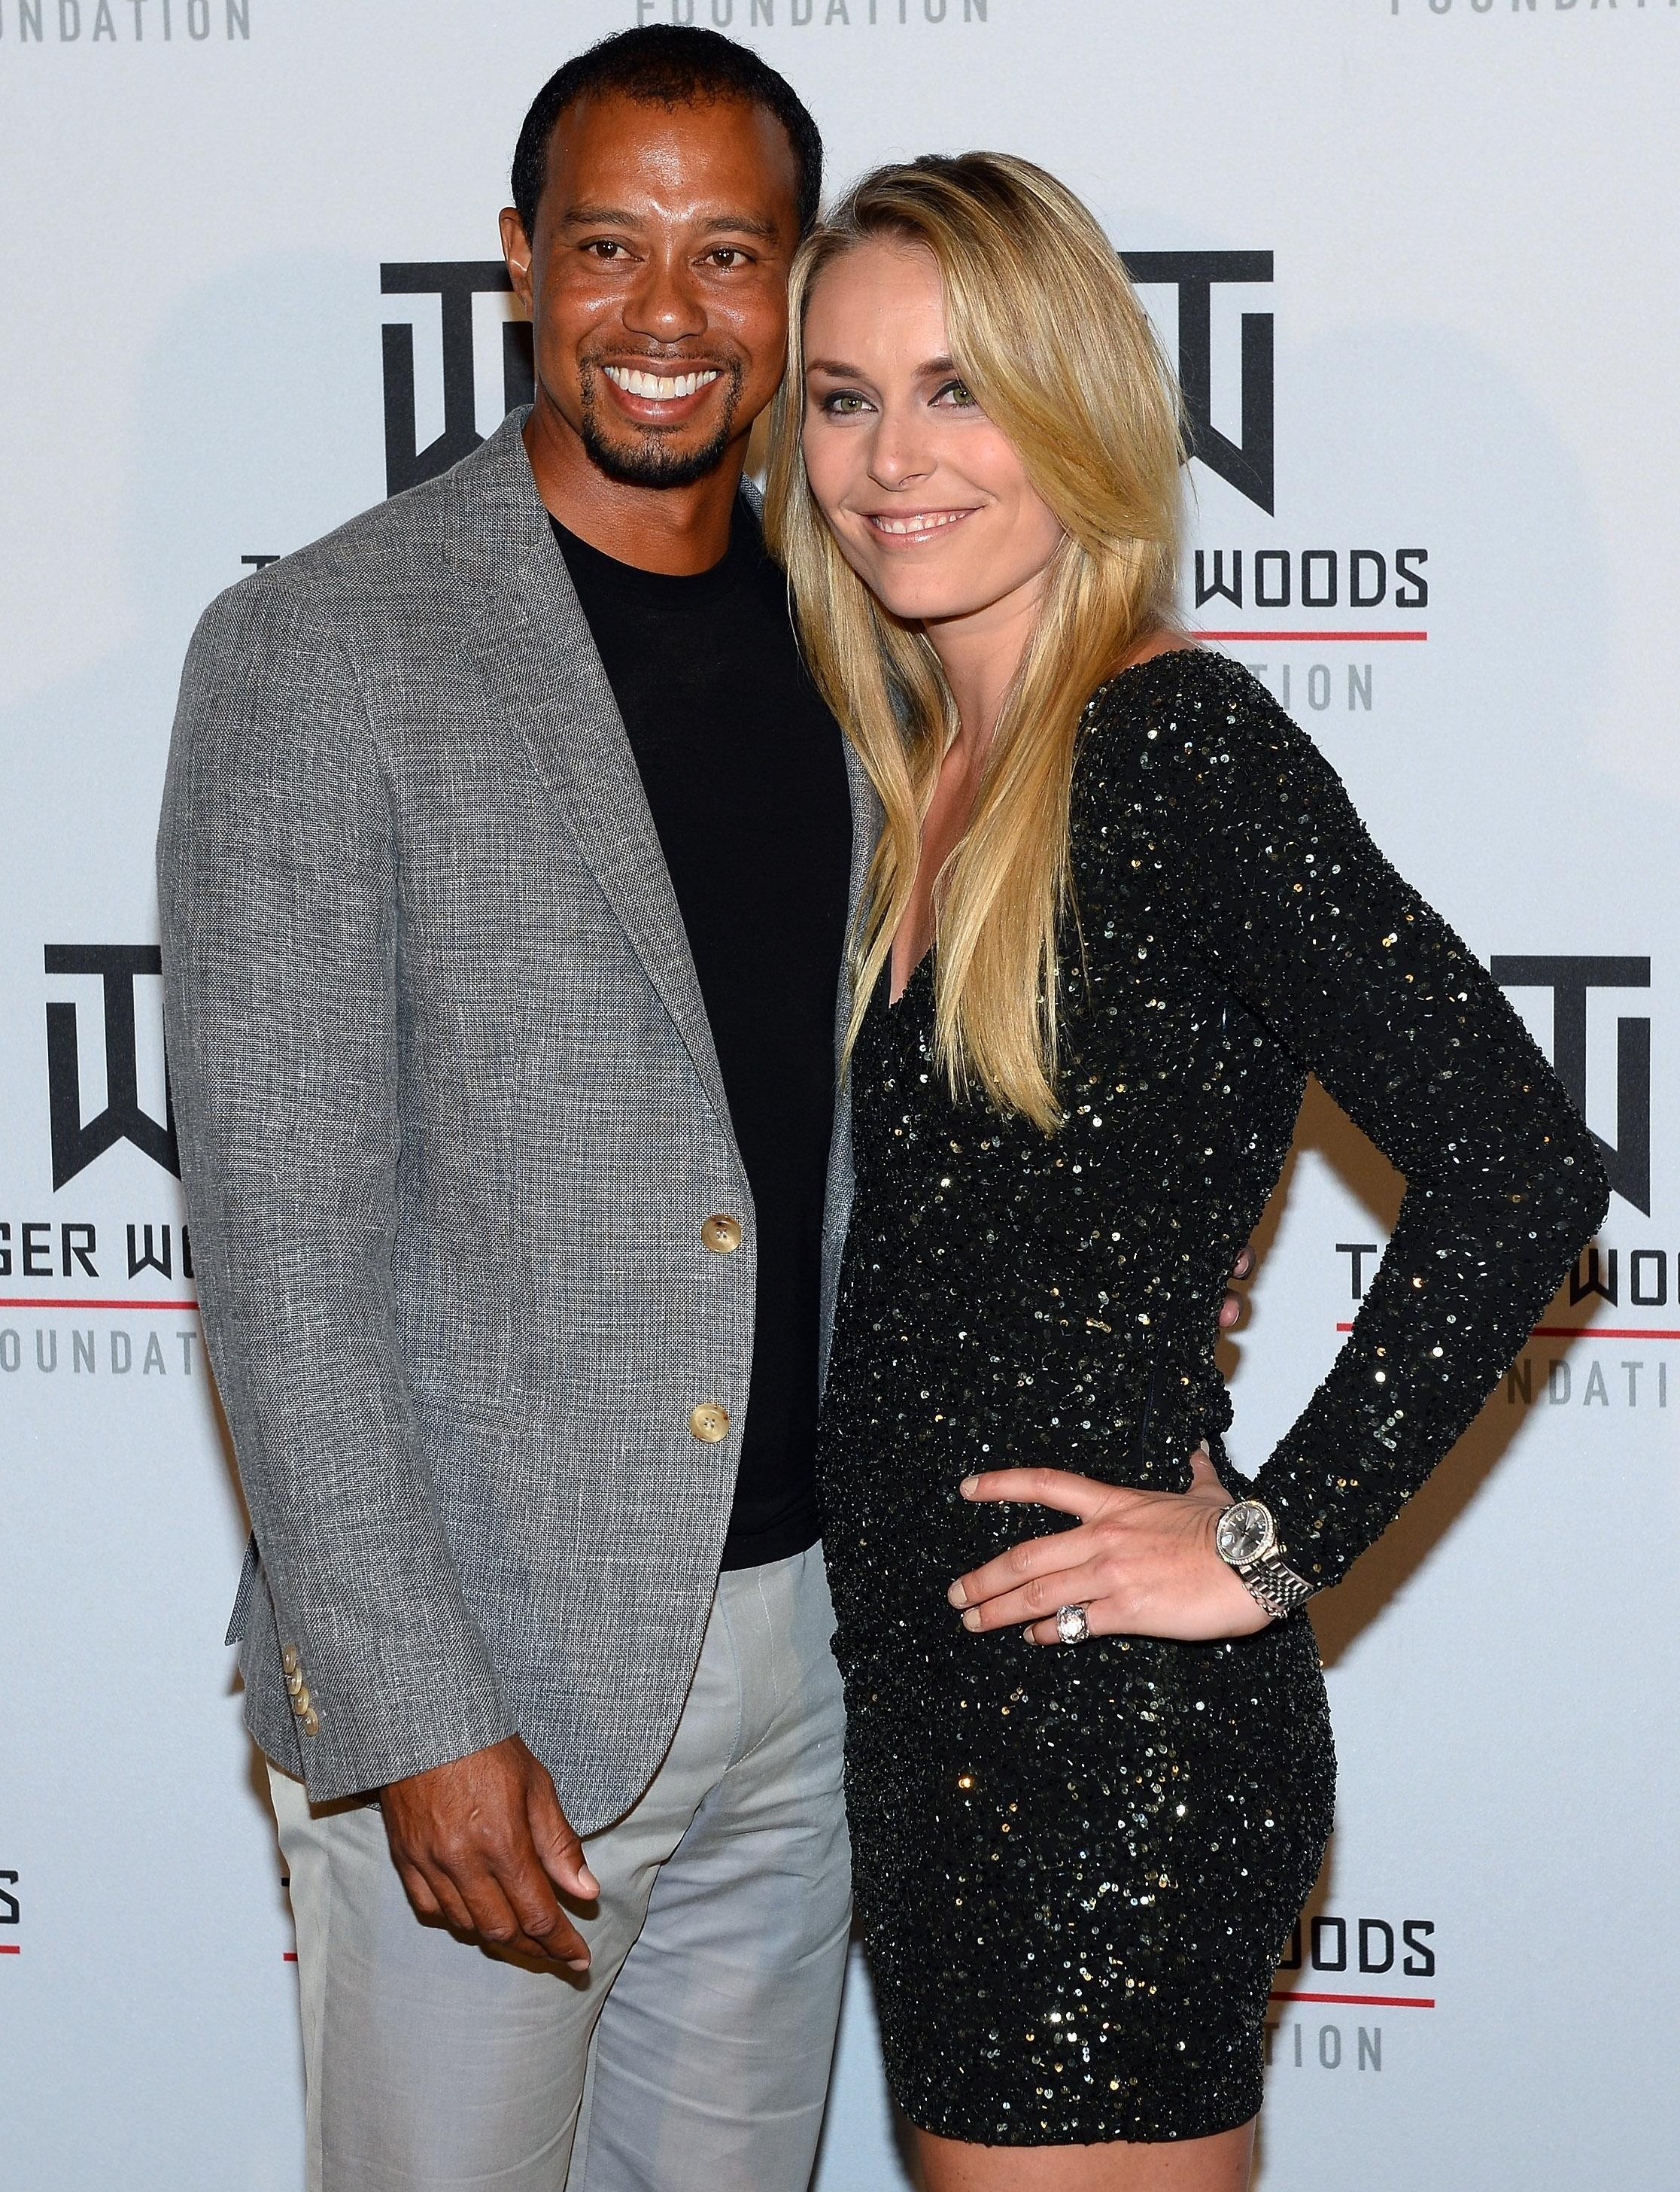 Olympic skier Lindsey Vonn dated Tiger Woods briefly in 2013